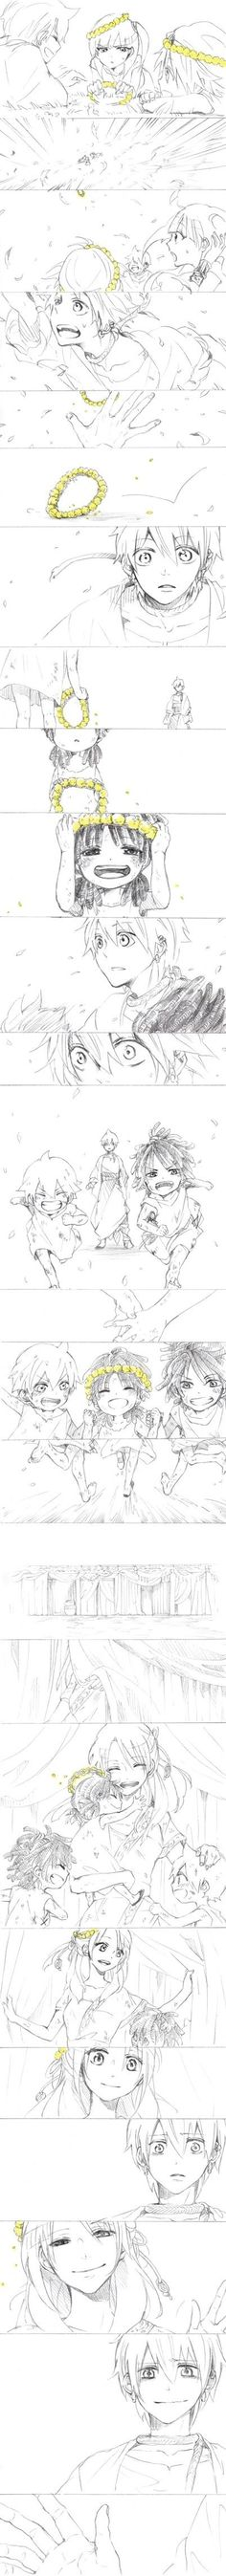 Alibaba, Morgiana, Aladdin, Cassim, Mariam, and Anise        ~Magi: The Labyrinth of Magic